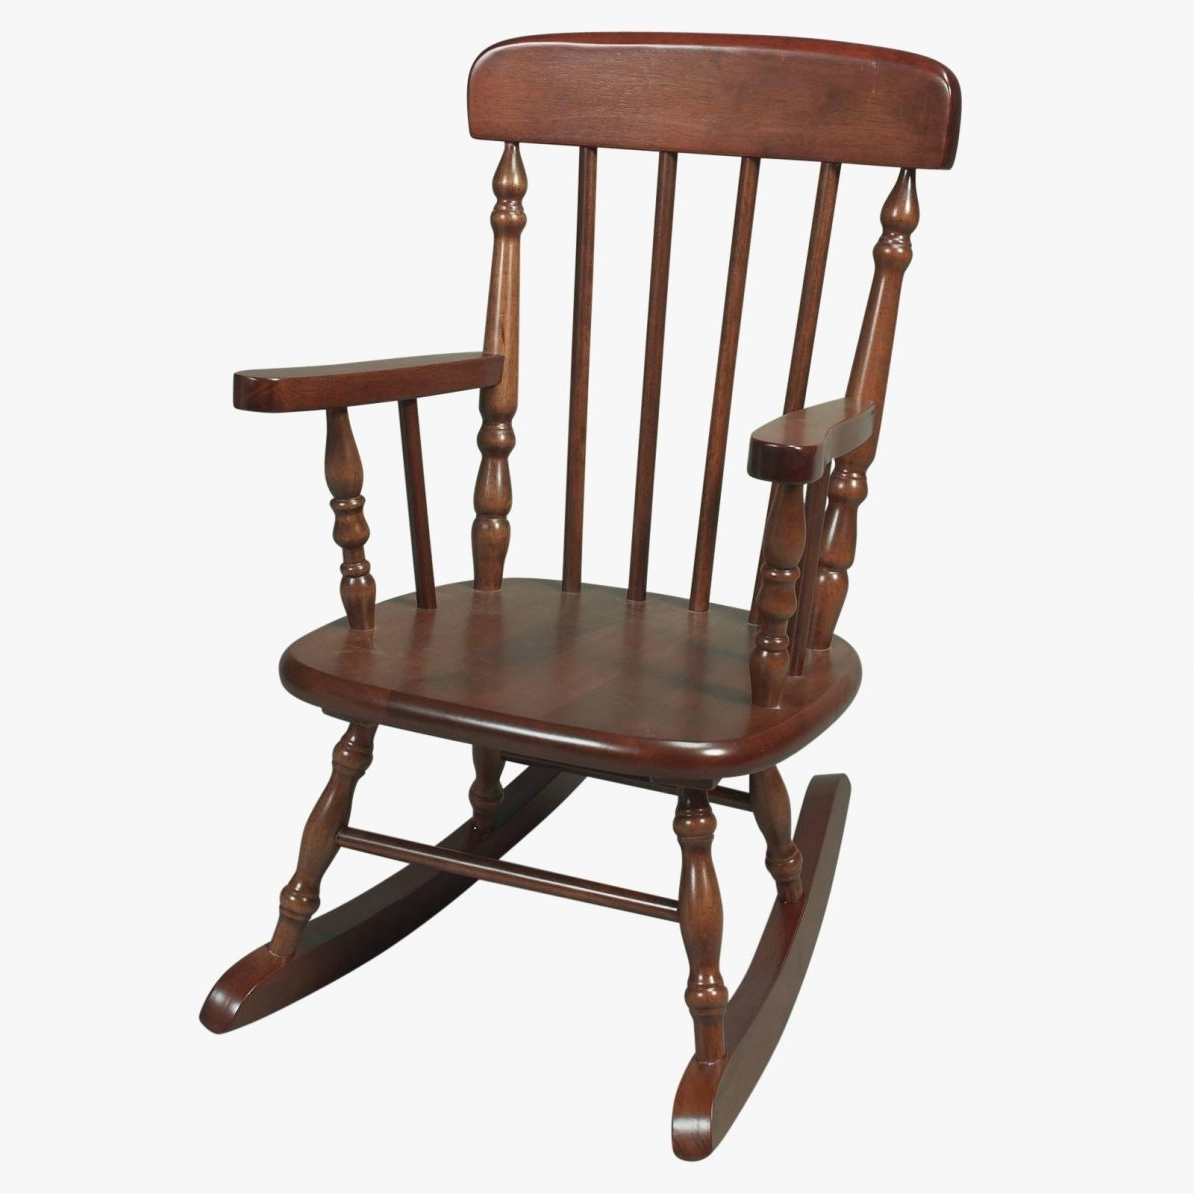 Latest Toddler Wooden Rocking Chair Delightful – Braovic In Rocking Chairs For Toddlers (View 11 of 15)